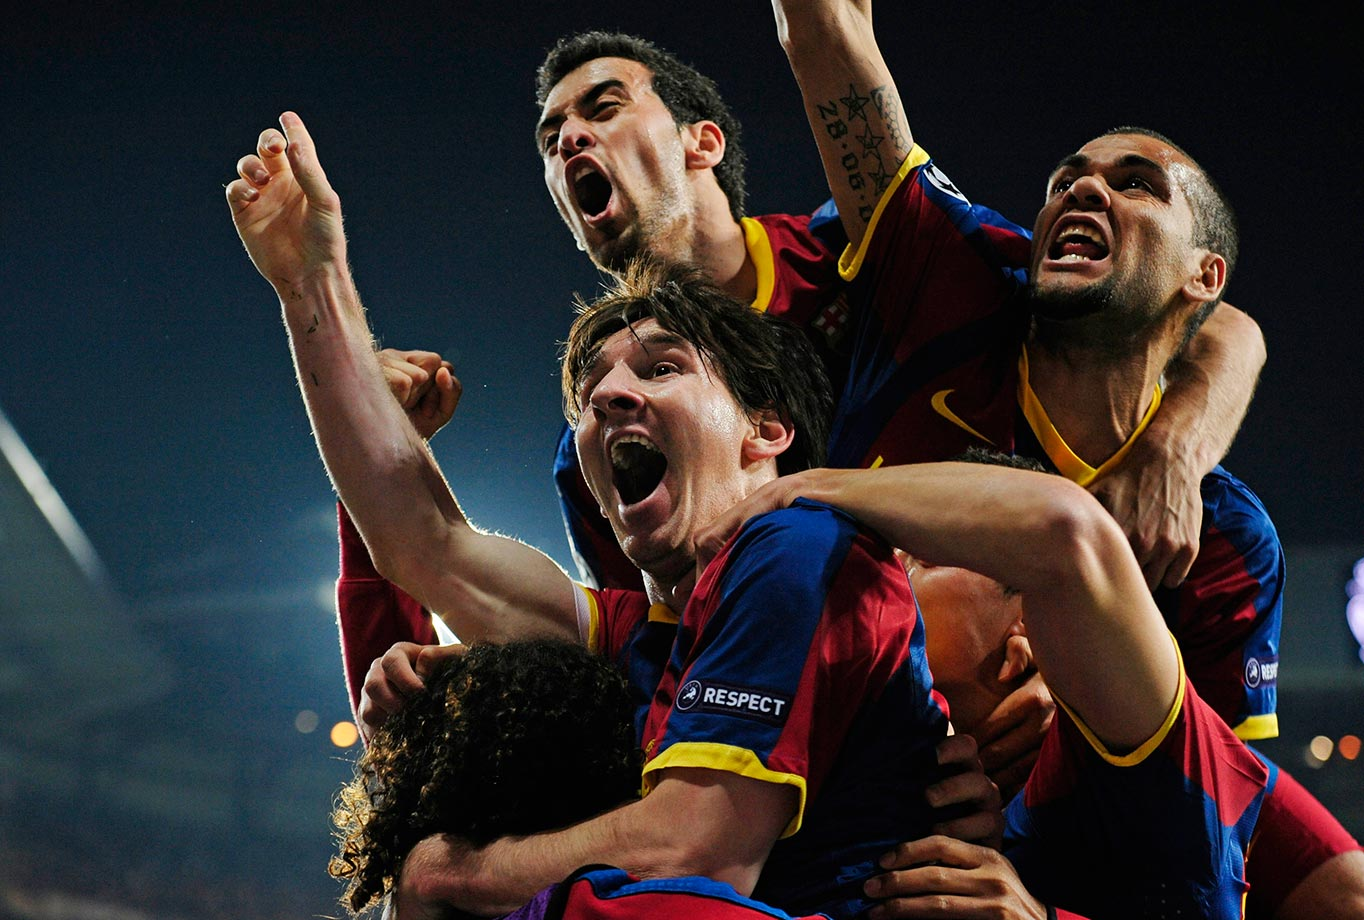 Barcelona's Lionel Messi celebrates with teammates after scoring against Real Madrid during their semifinal, 1st leg Champions League soccer match on April 27, 2011 at the Santiago Bernabeu Stadium in Madrid, Spain.